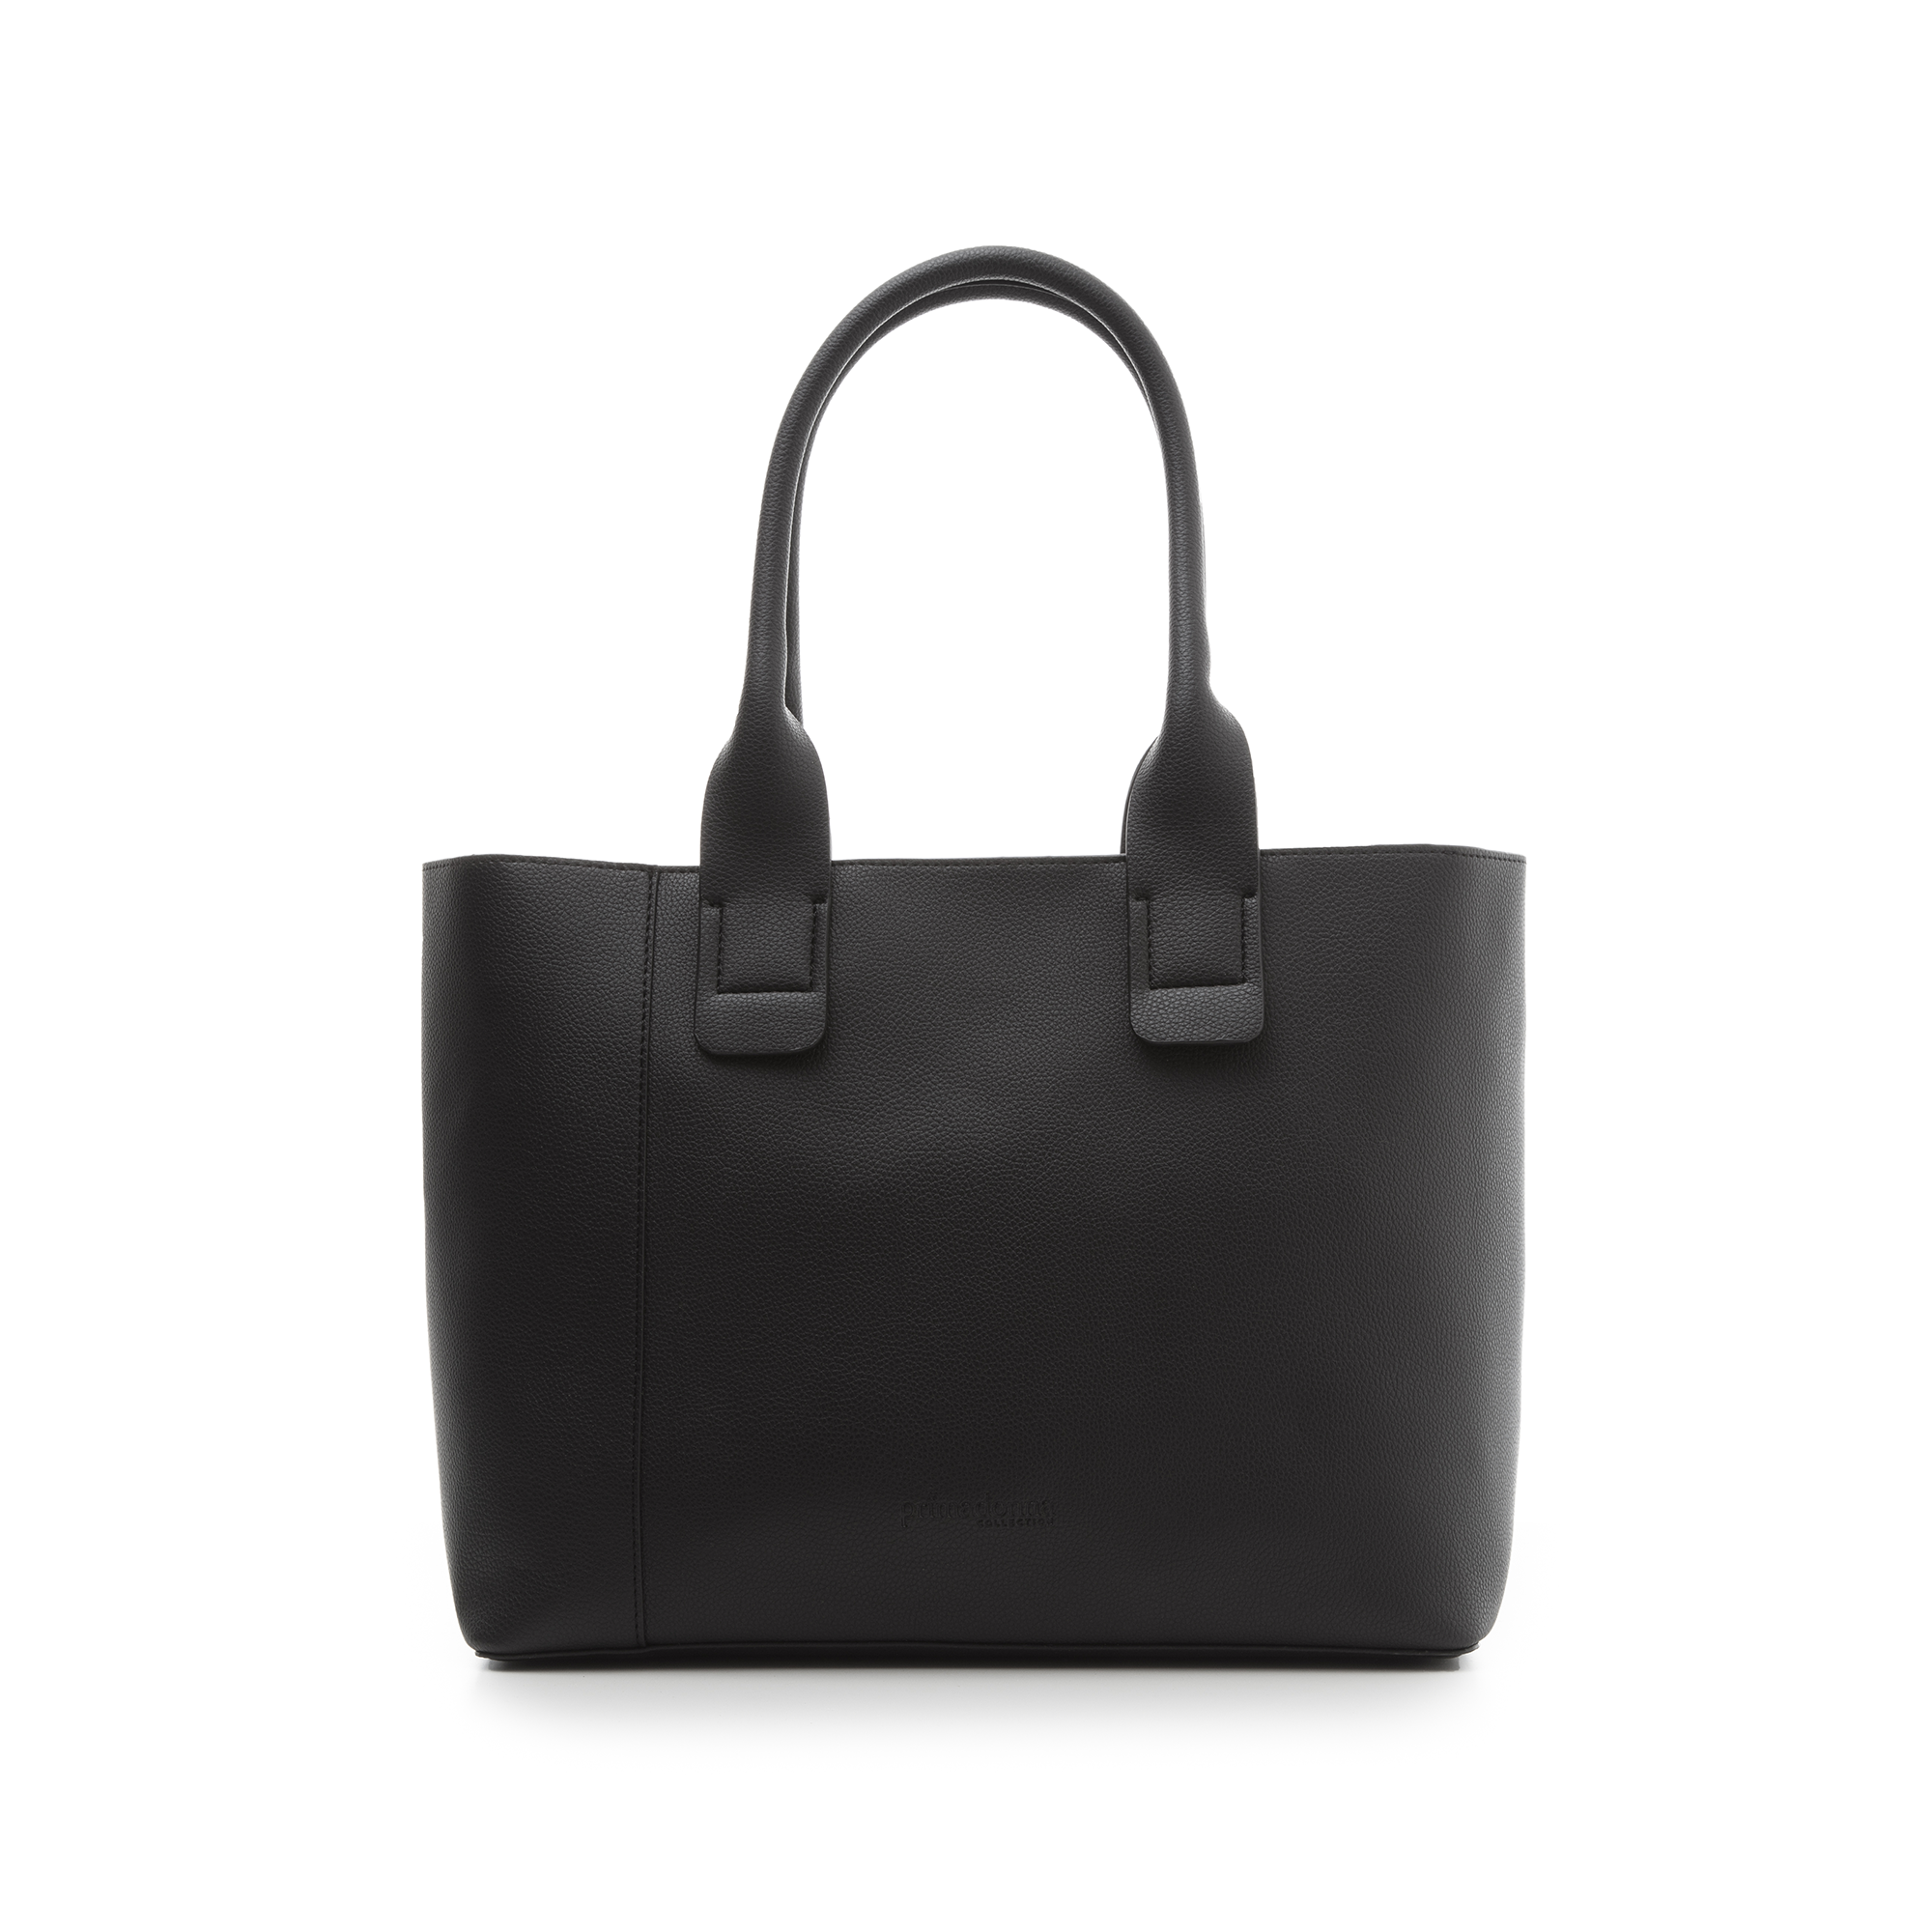 Borsa media nero in eco-pelle